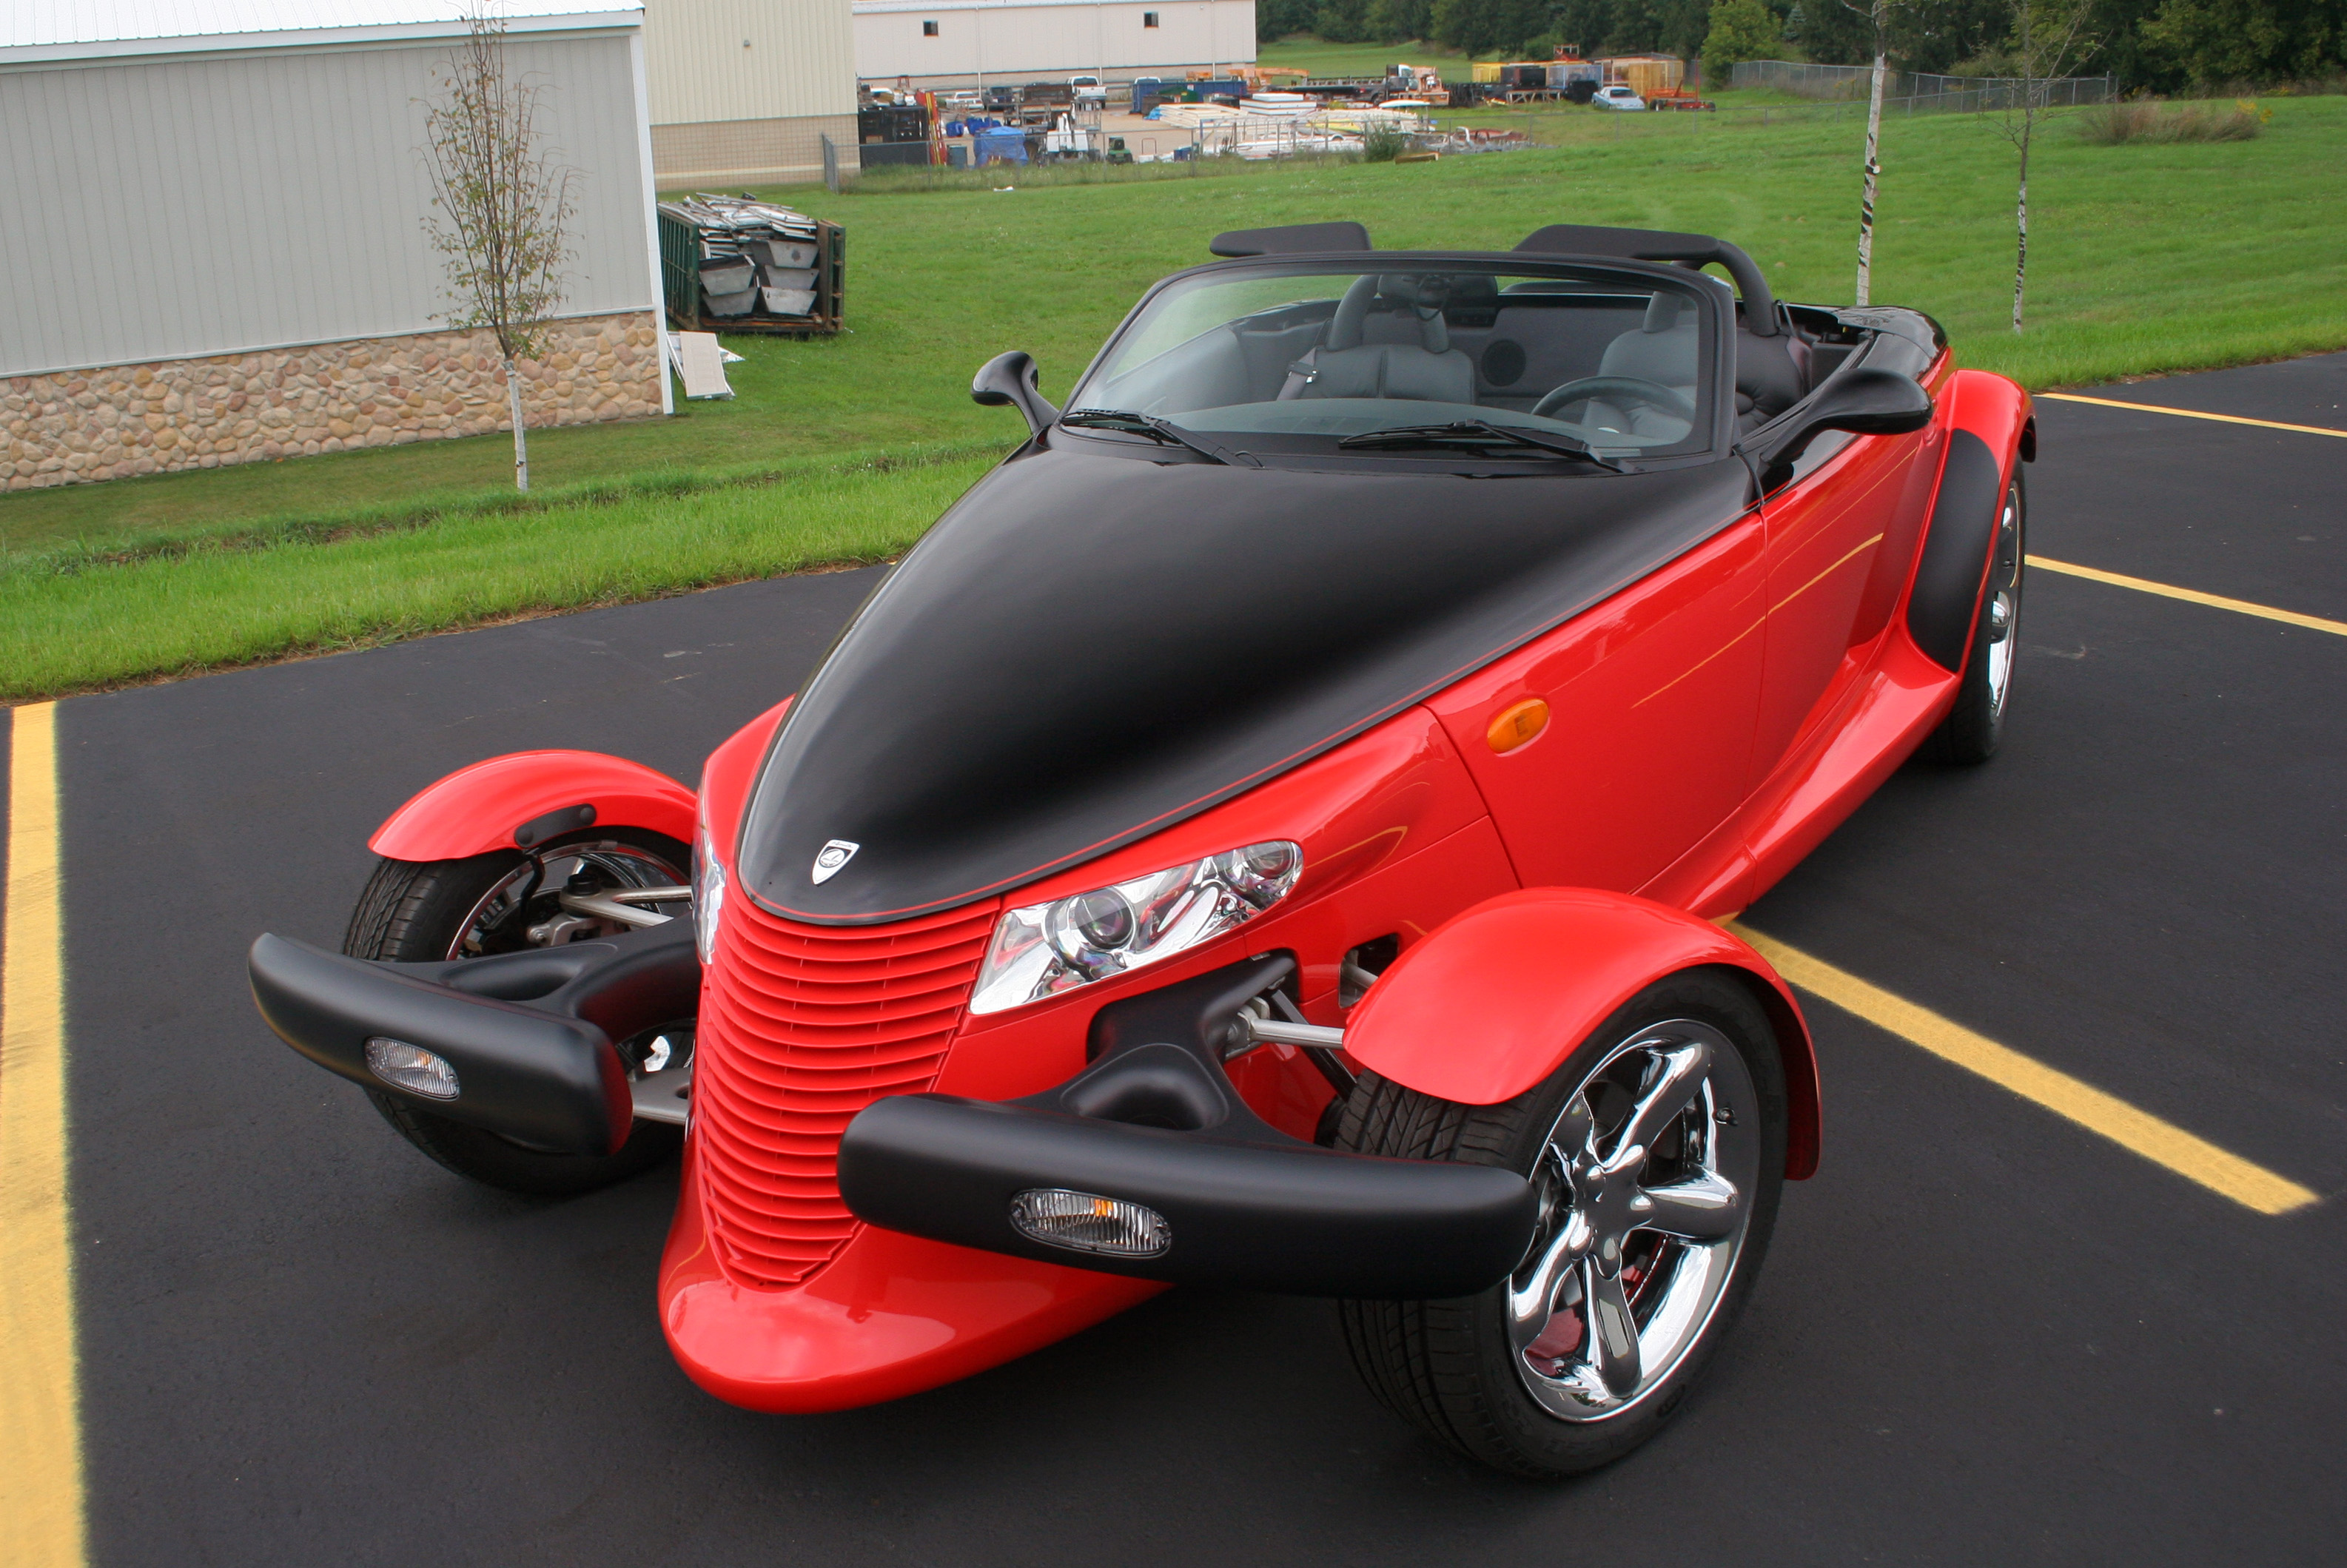 Plymouth Prowler #19